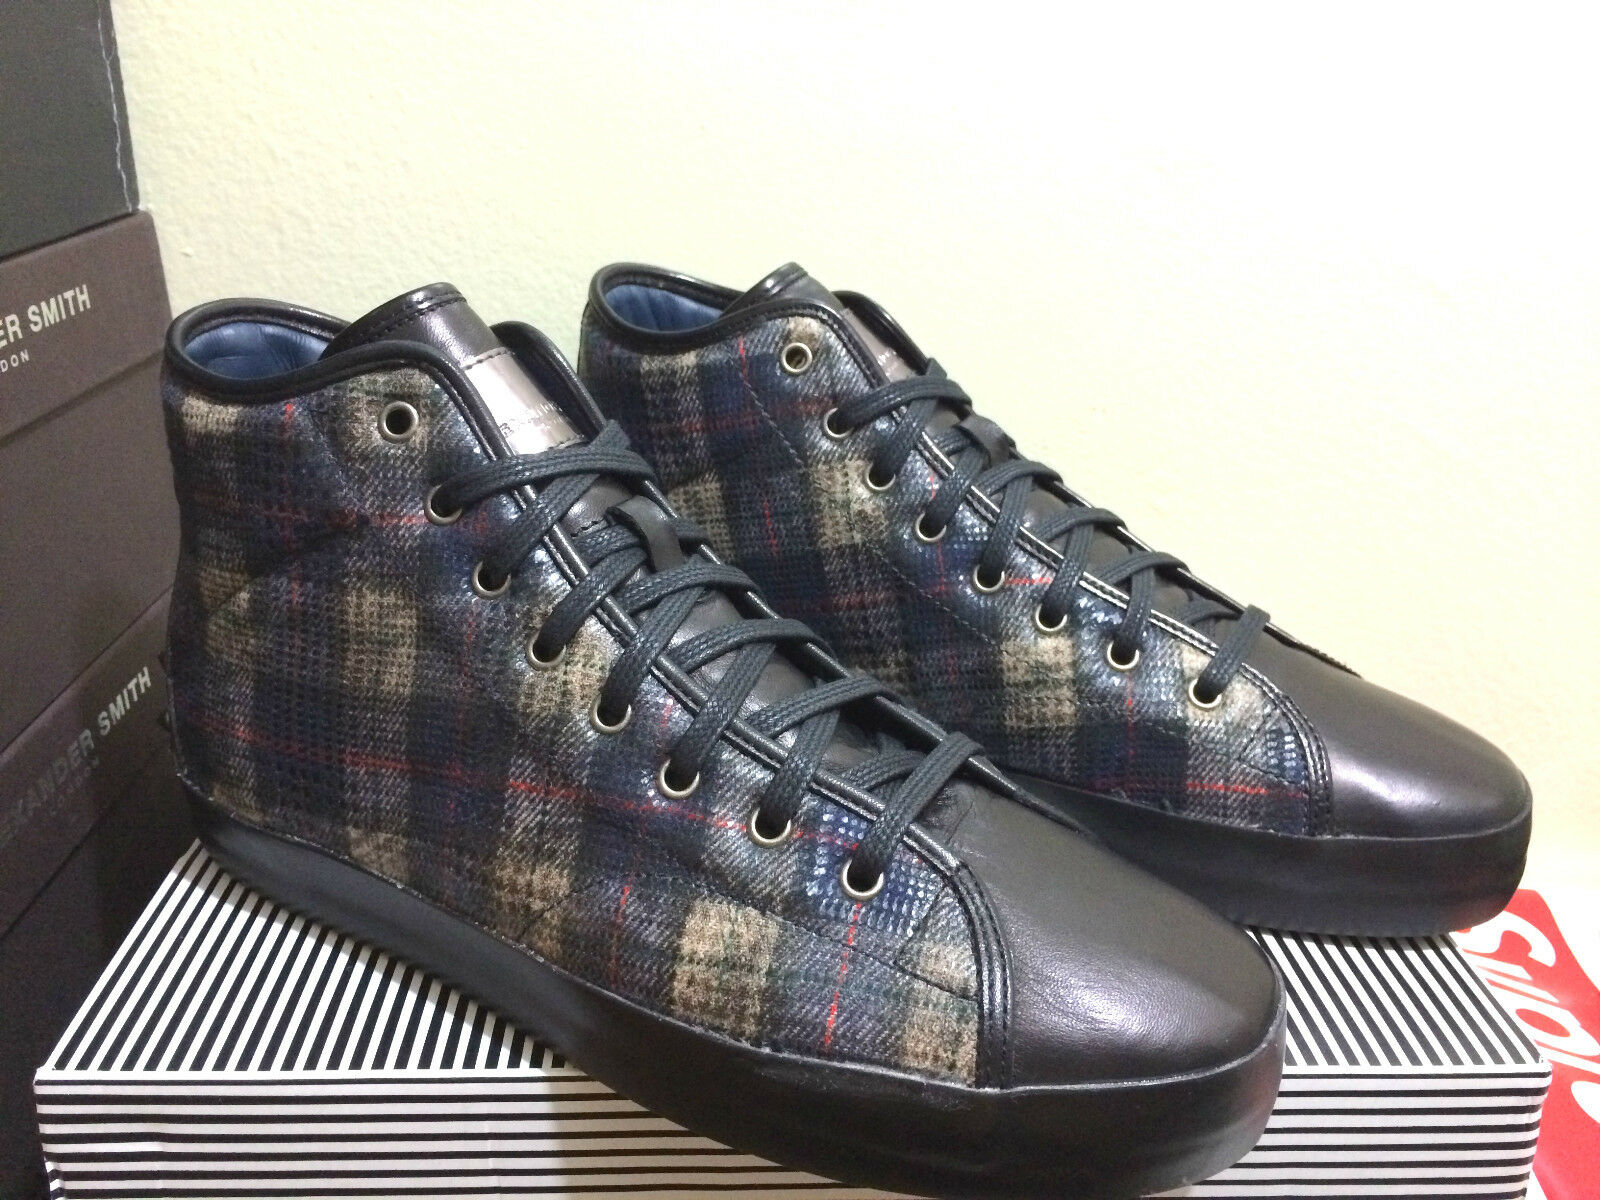 Alexander Smith London High top shoes,  600+ made in italy Alexander Smith shoes